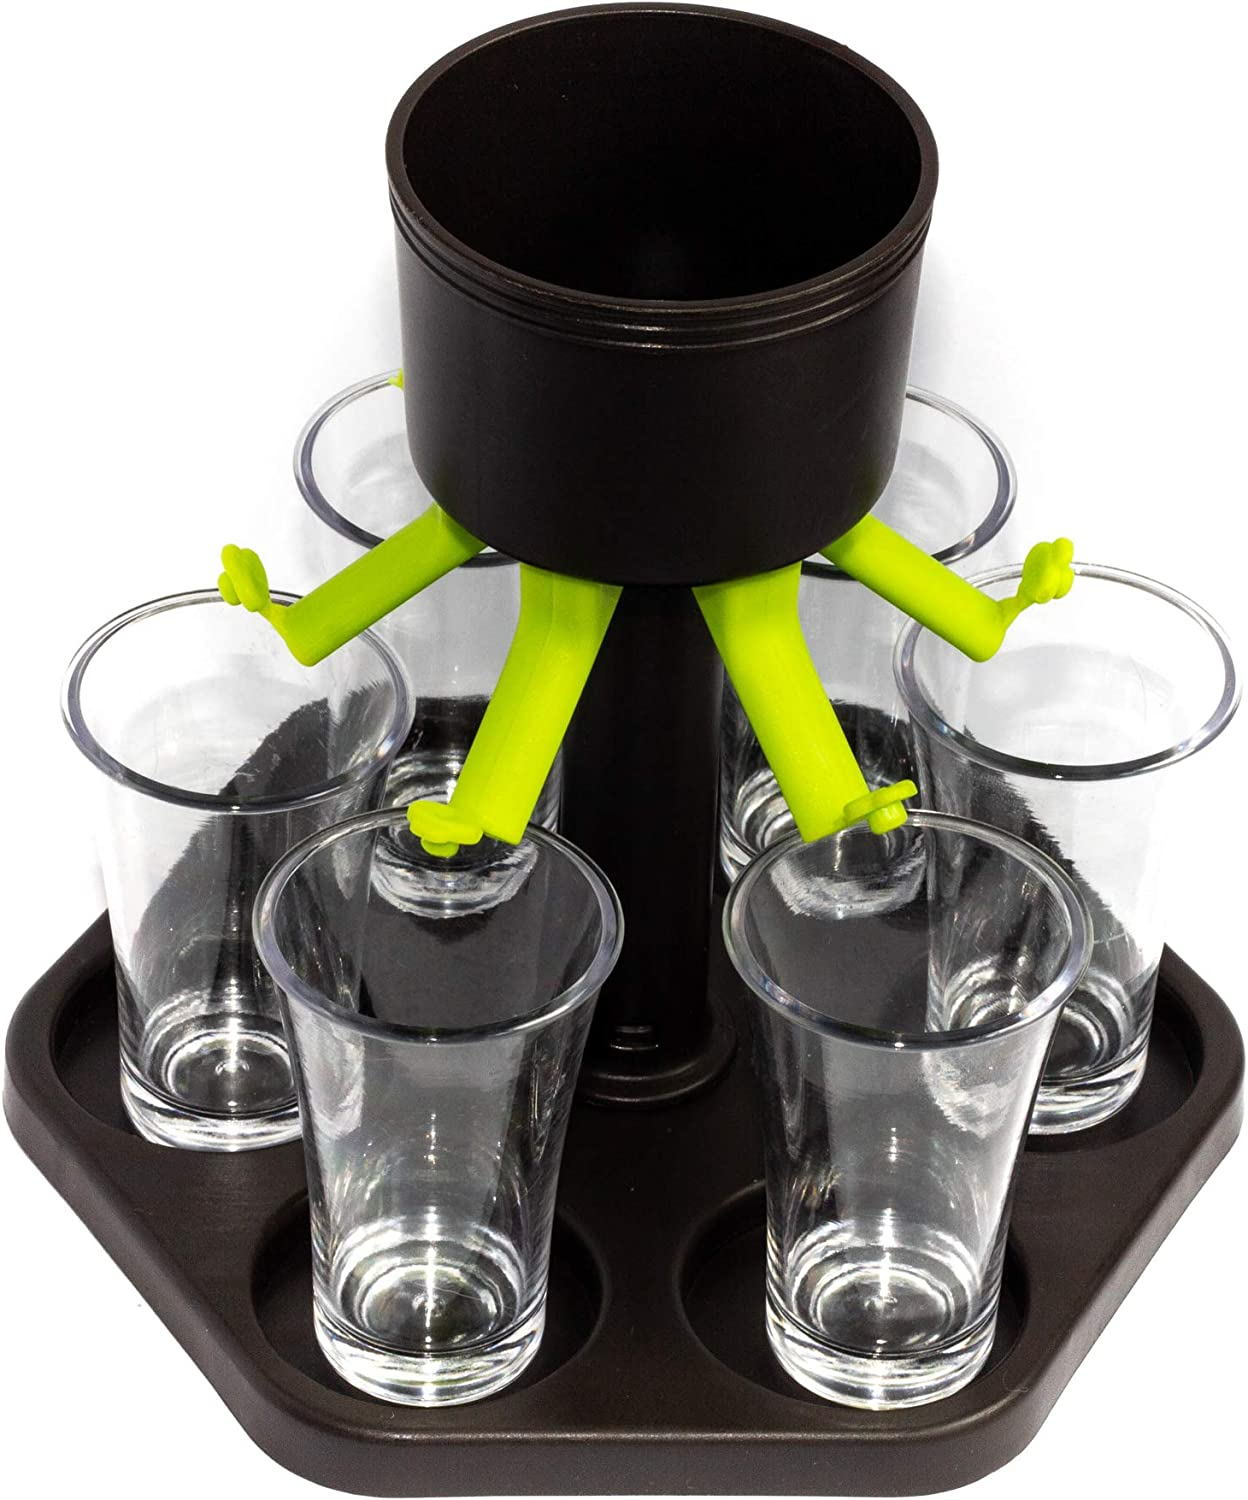 6 Shot Glass Dispenser and Holder - With Six Glasses and Plug - Buddy Dispenser for Drinking Games, Dinner Party - Wine, Cocktail and Liqour Dispenser – Black